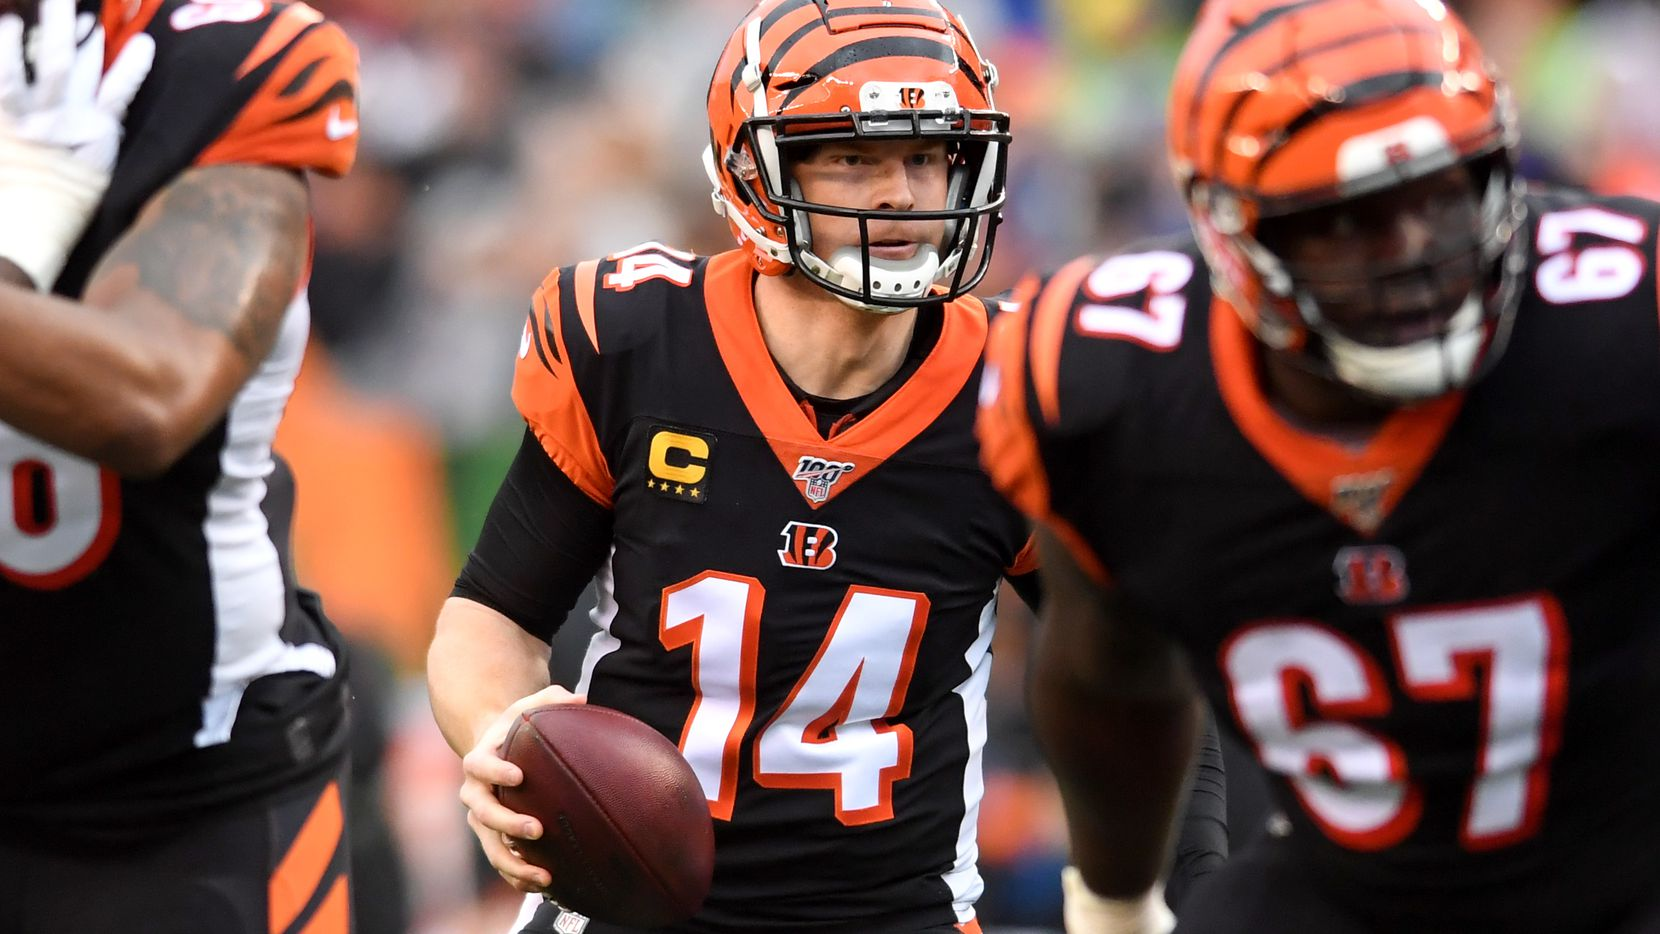 Bengals quarterback Andy Dalton (14) drops back to pass during the first quarter of a game against the Cleveland Browns on Dec. 29, 2019, at Paul Brown Stadium in Cincinnati. (Photo by Nick Cammett)